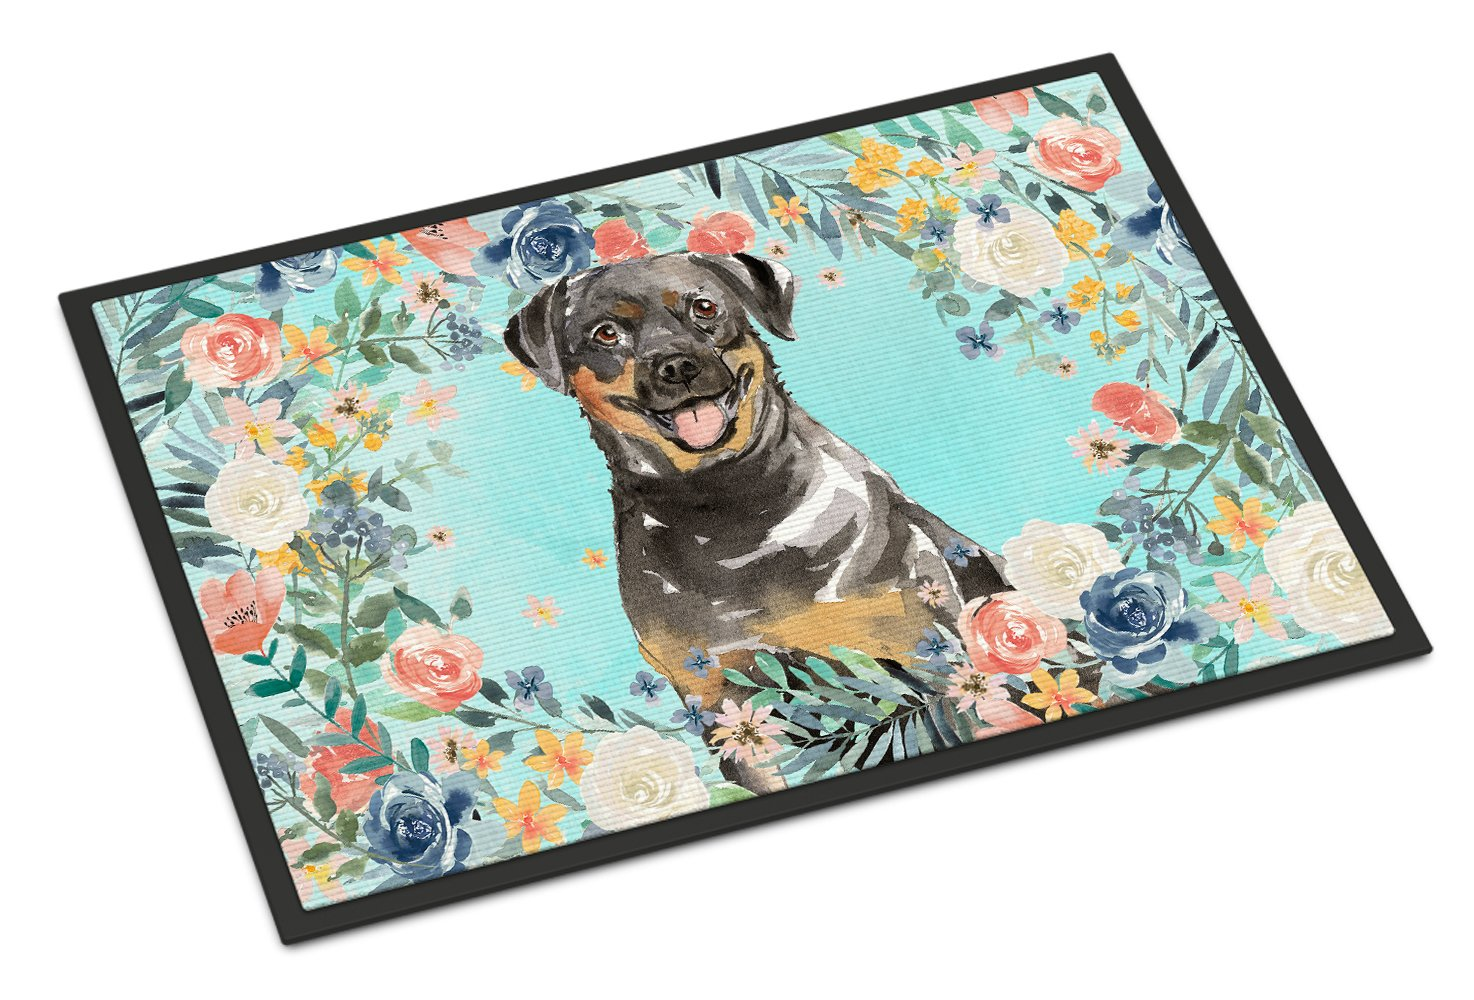 Rottweiler Indoor or Outdoor Mat 24x36 CK3415JMAT by Caroline's Treasures